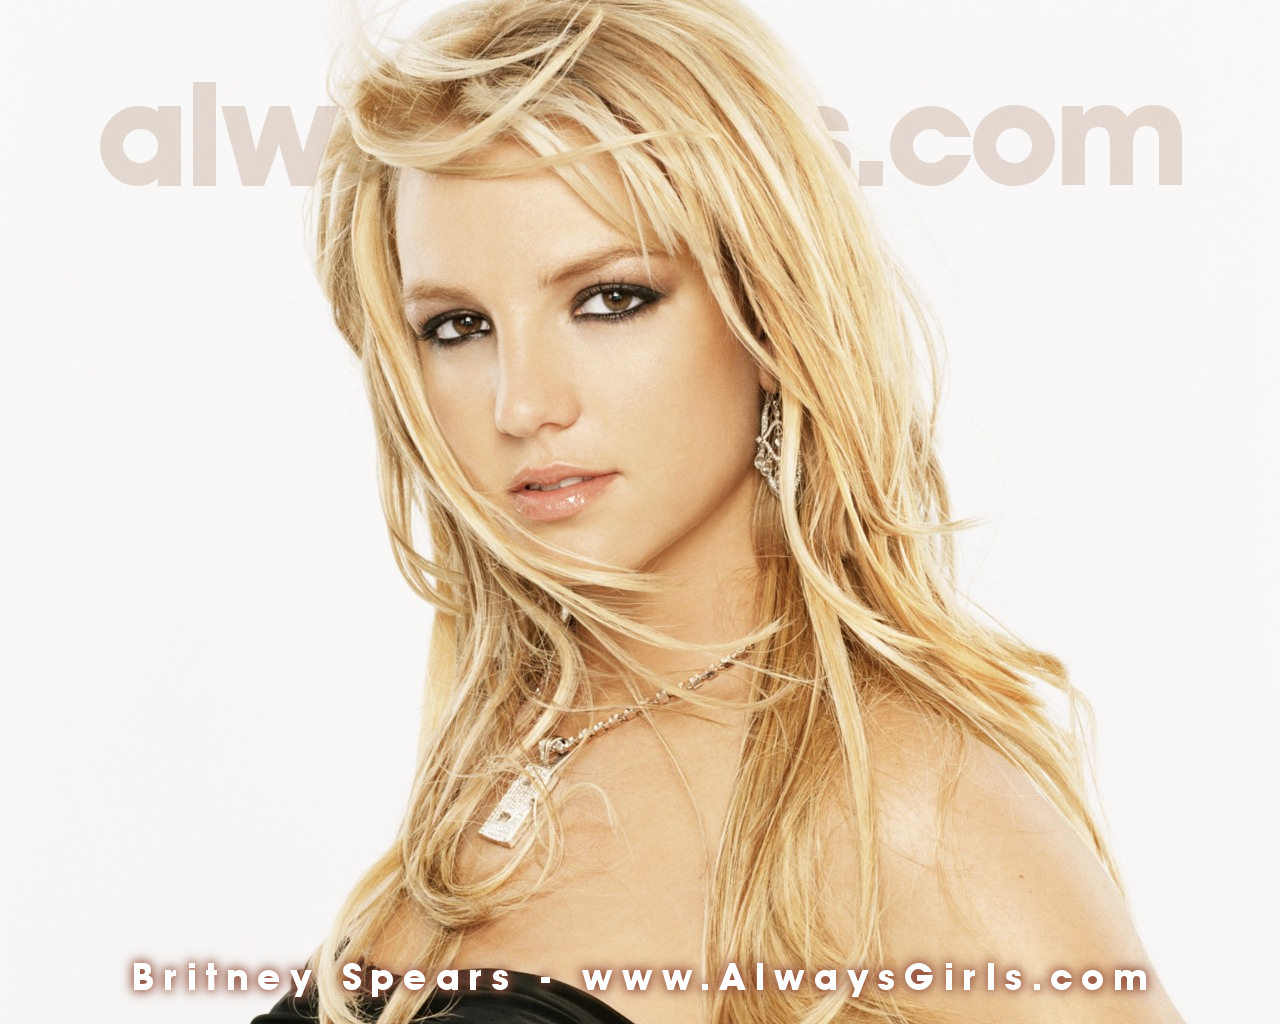 britney spears beautiful - photo #23